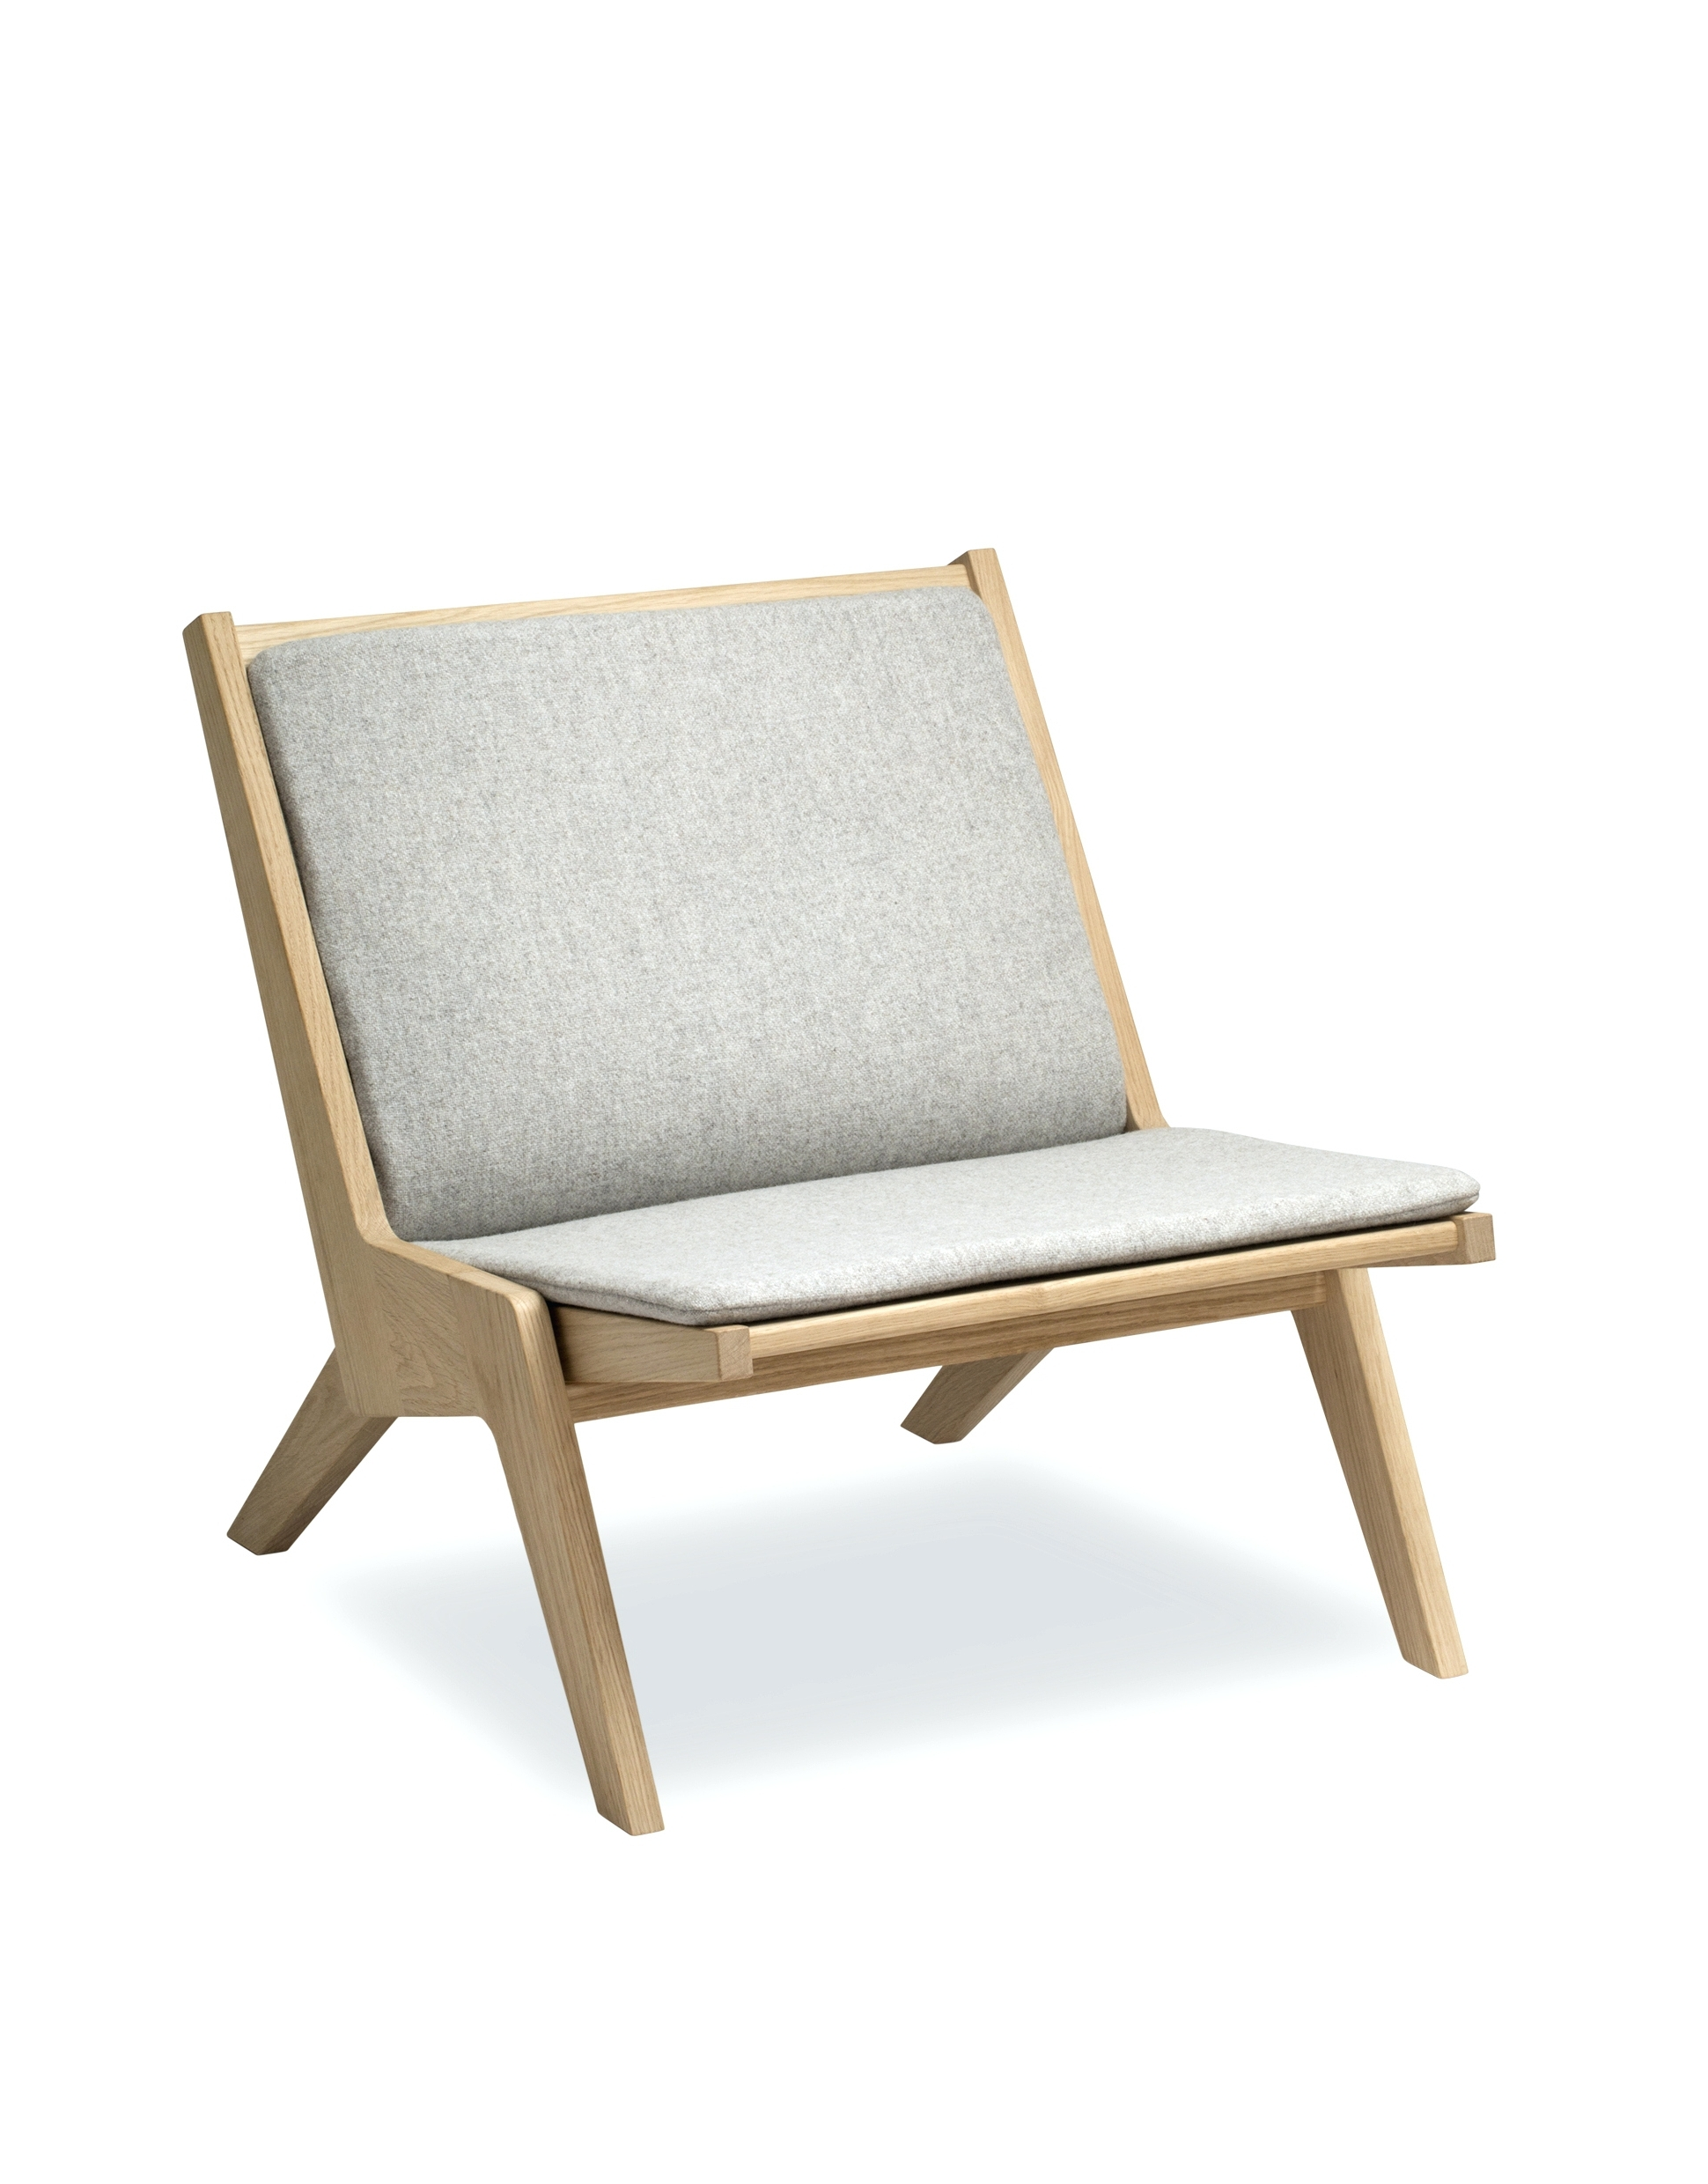 Web Chaise Lounge Lawn Chairs Within Trendy Web Chaise Lounge Lawn Chair • Lounge Chairs Ideas (View 2 of 15)